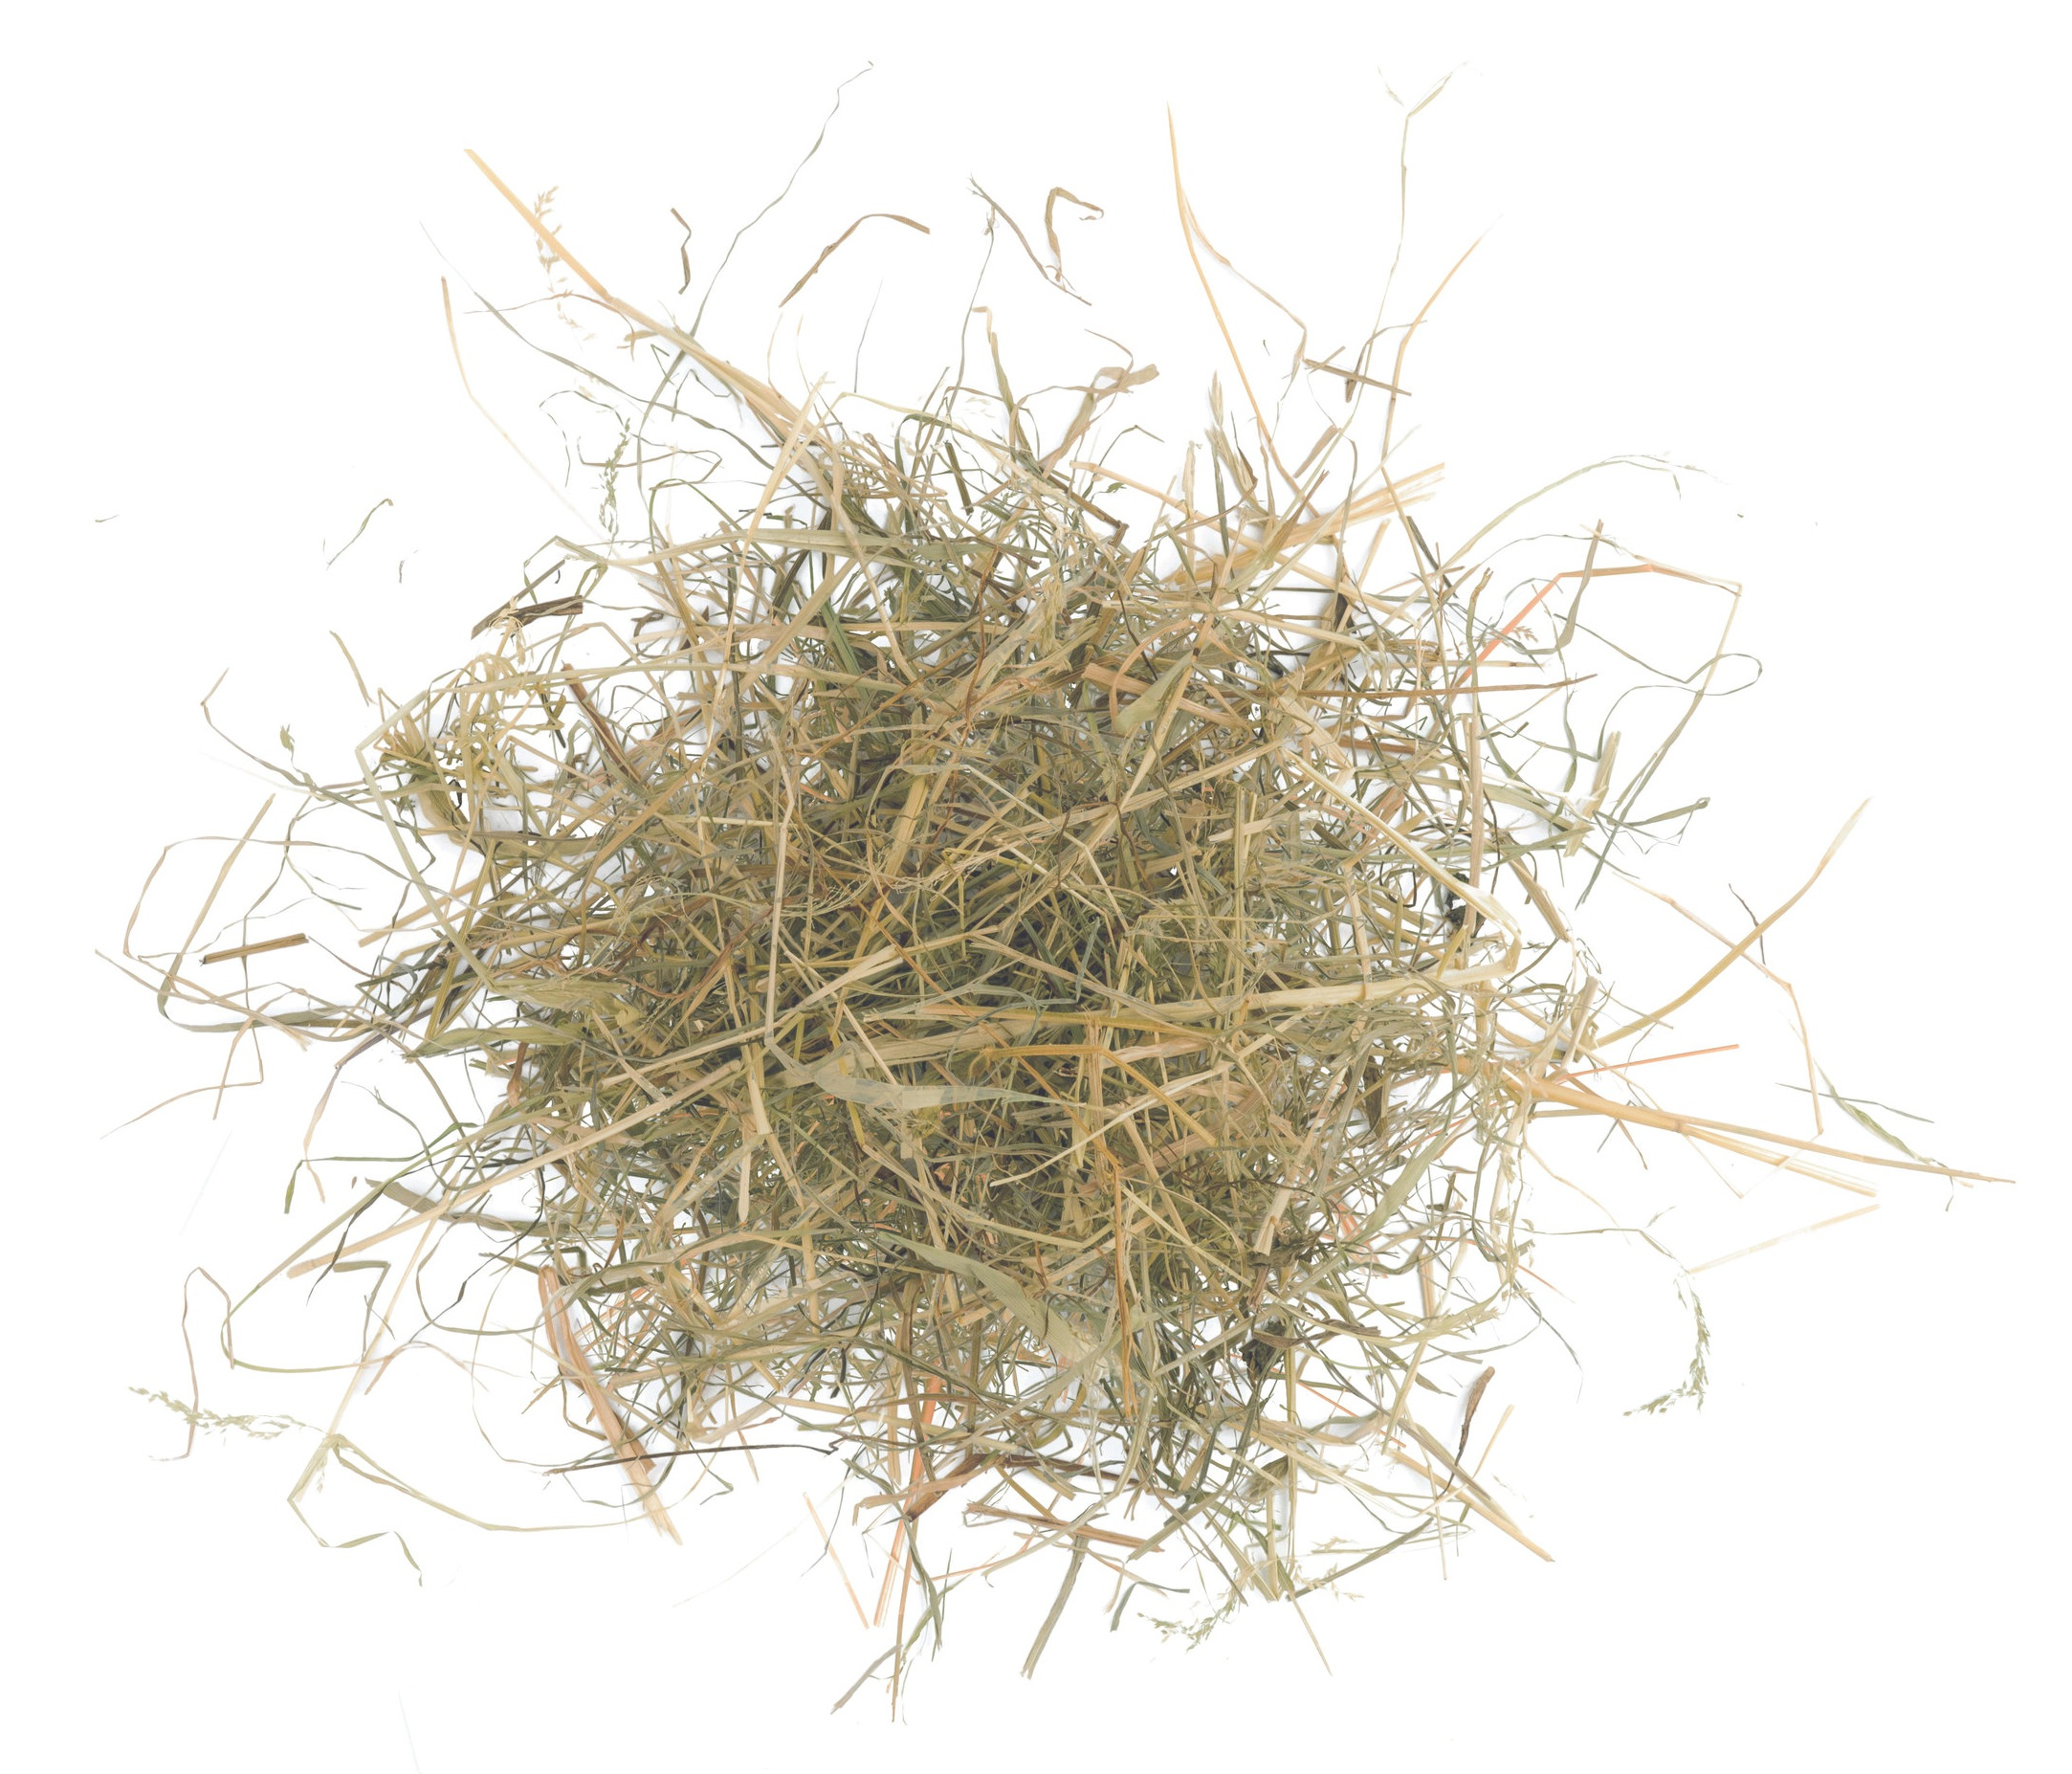 - HayDry grass for animal feed.